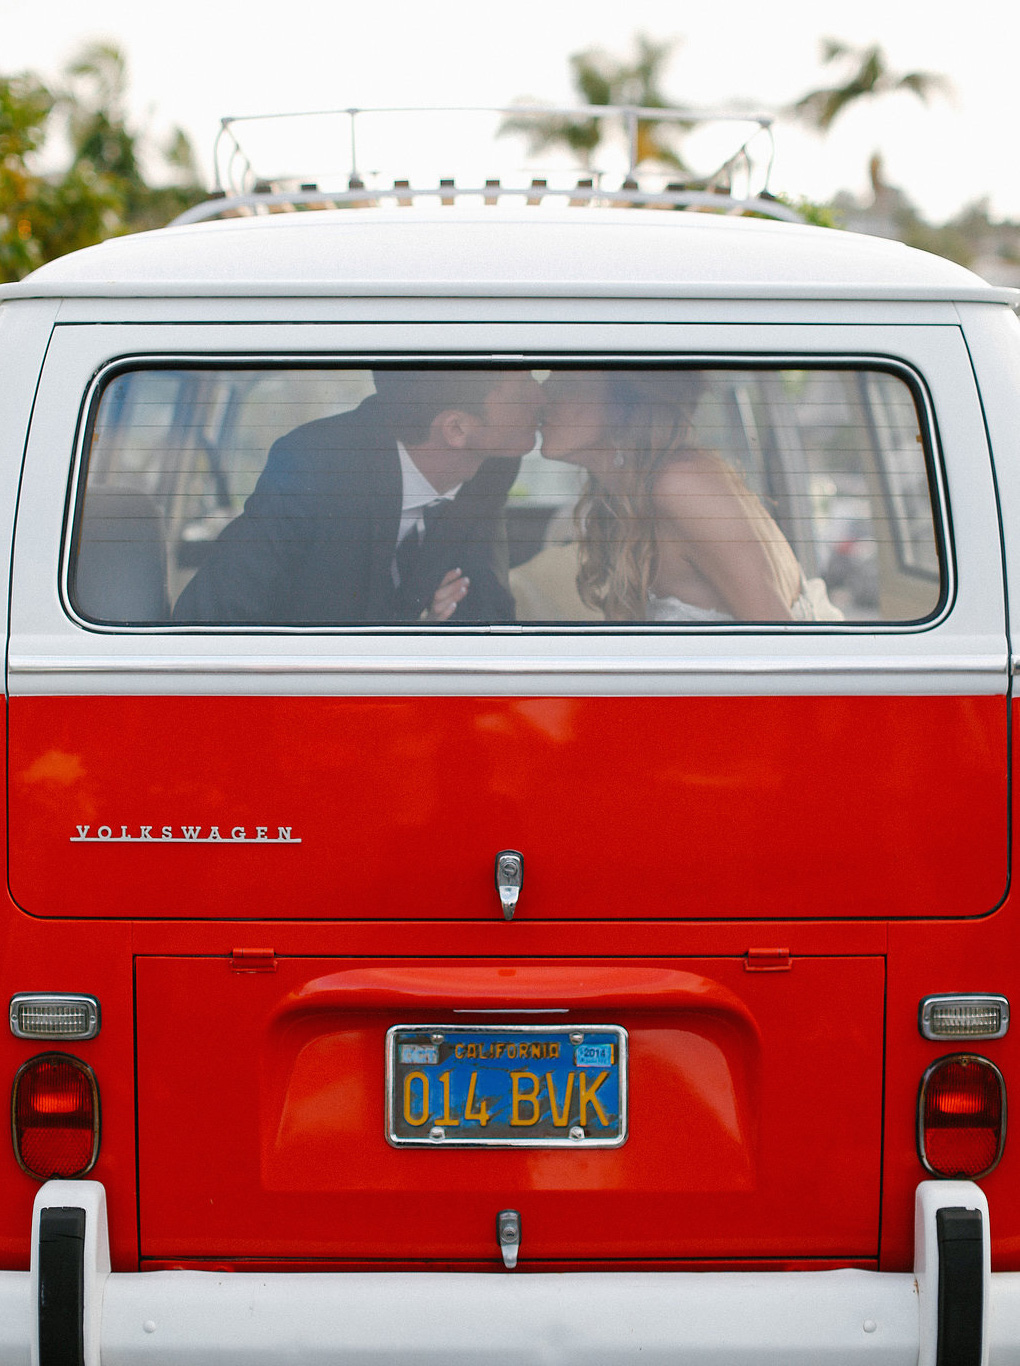 Bride and groom kiss in back of red VW bus